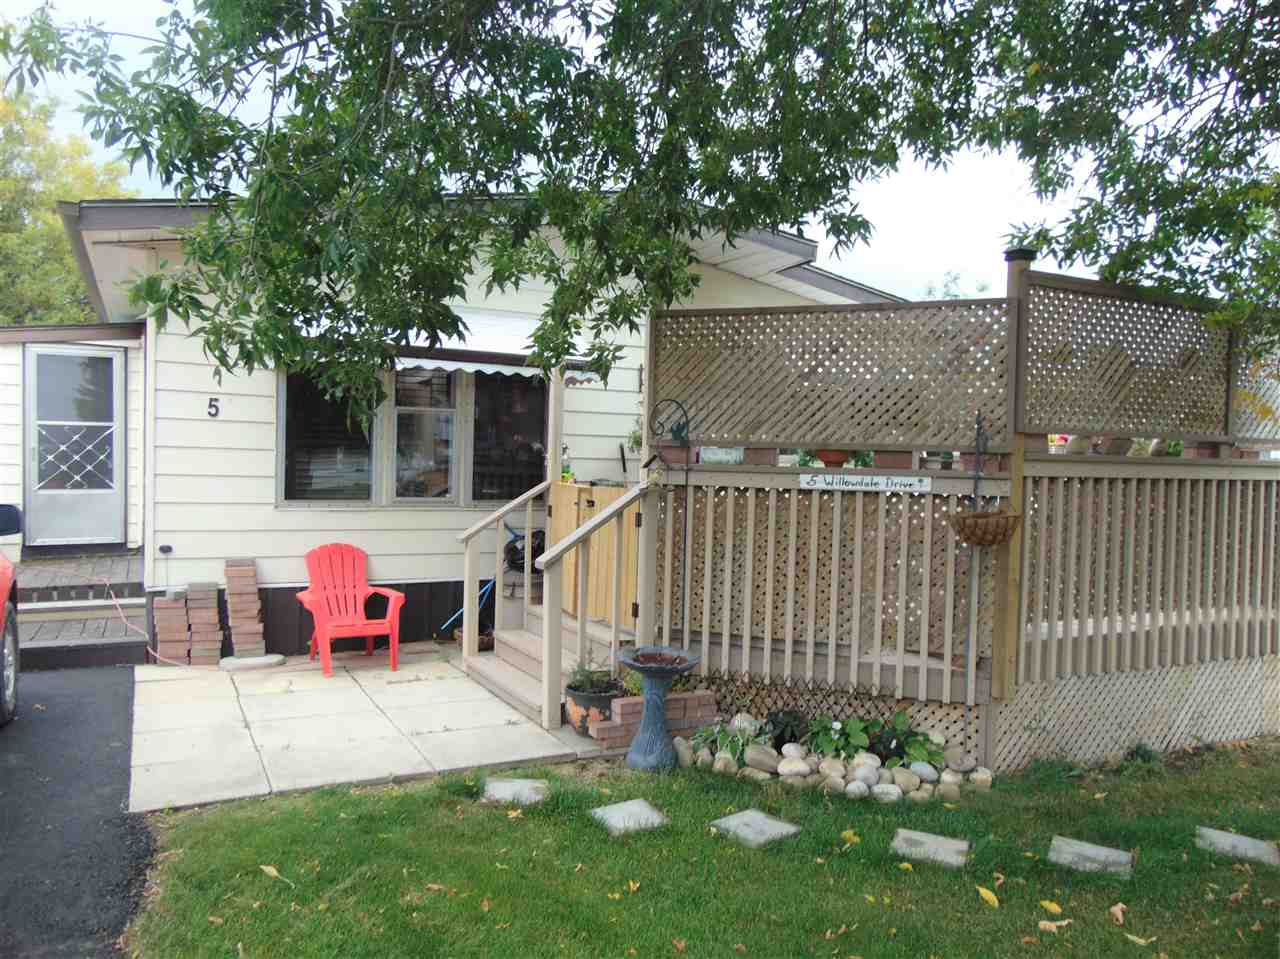 MLS® listing #E4145662 for sale located at 5 willowdale Drive